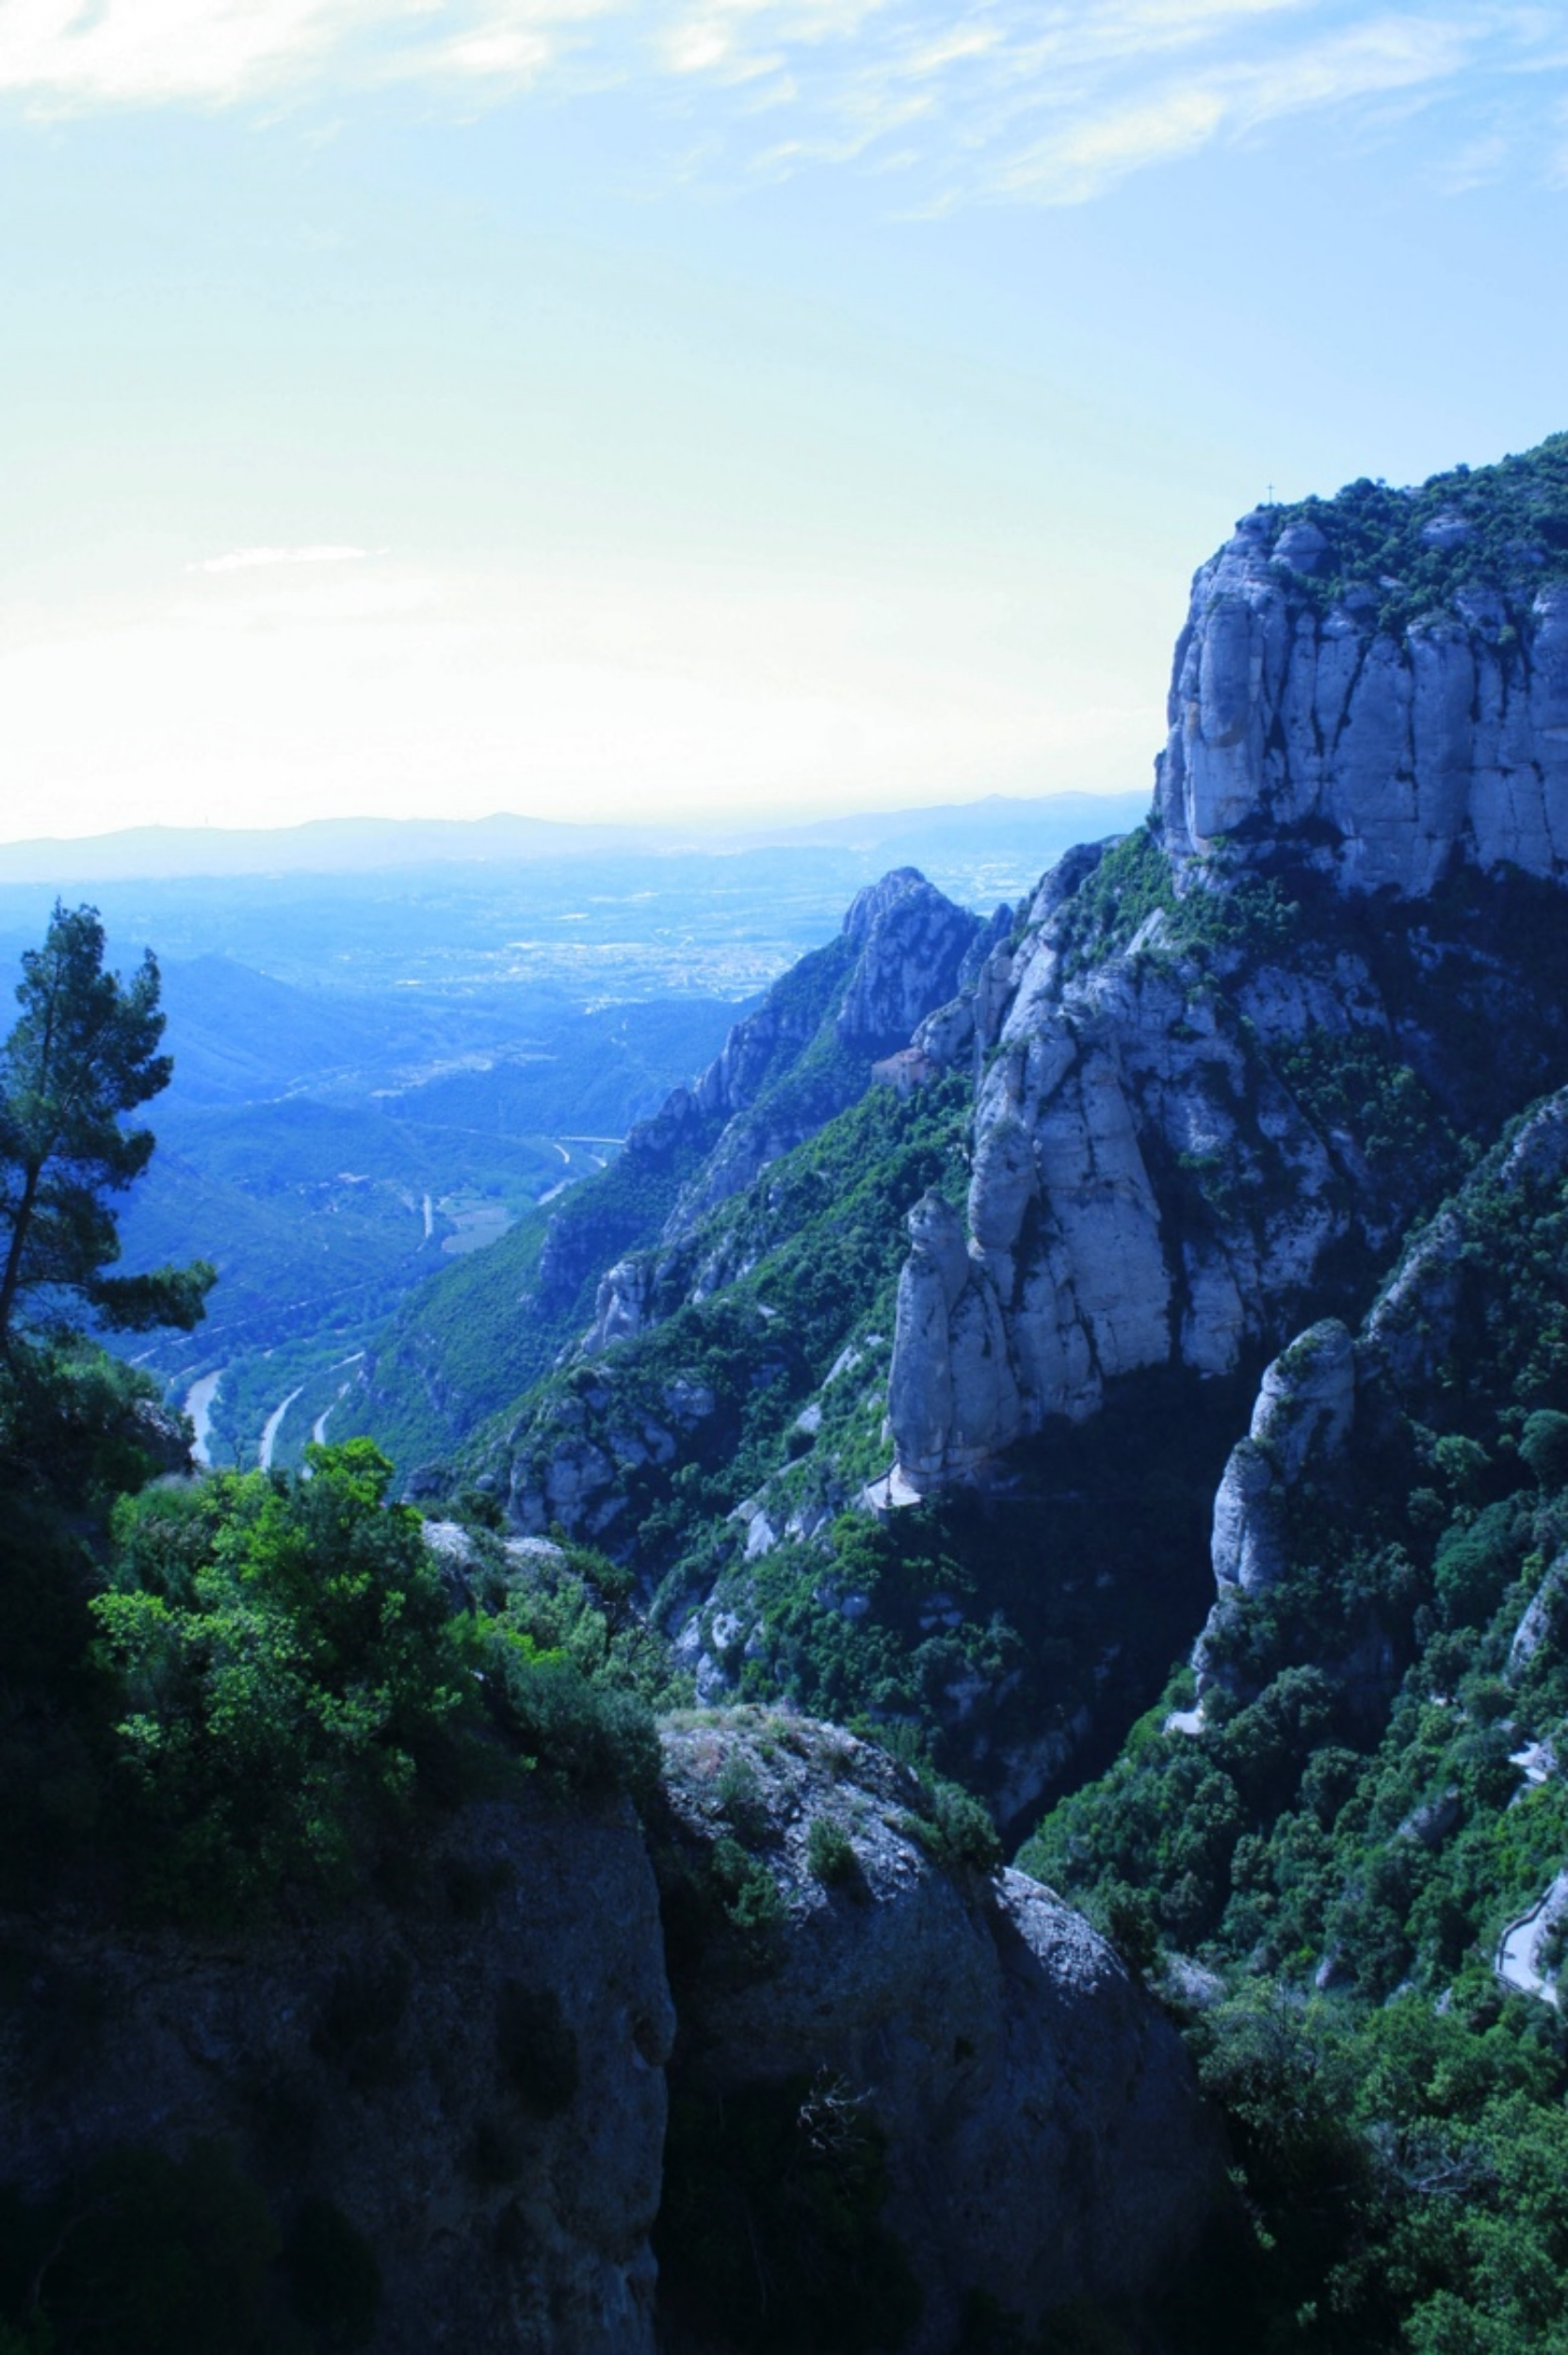 View from the visitor's center on Montserrat looking towards Barcelona.  Author's photo.